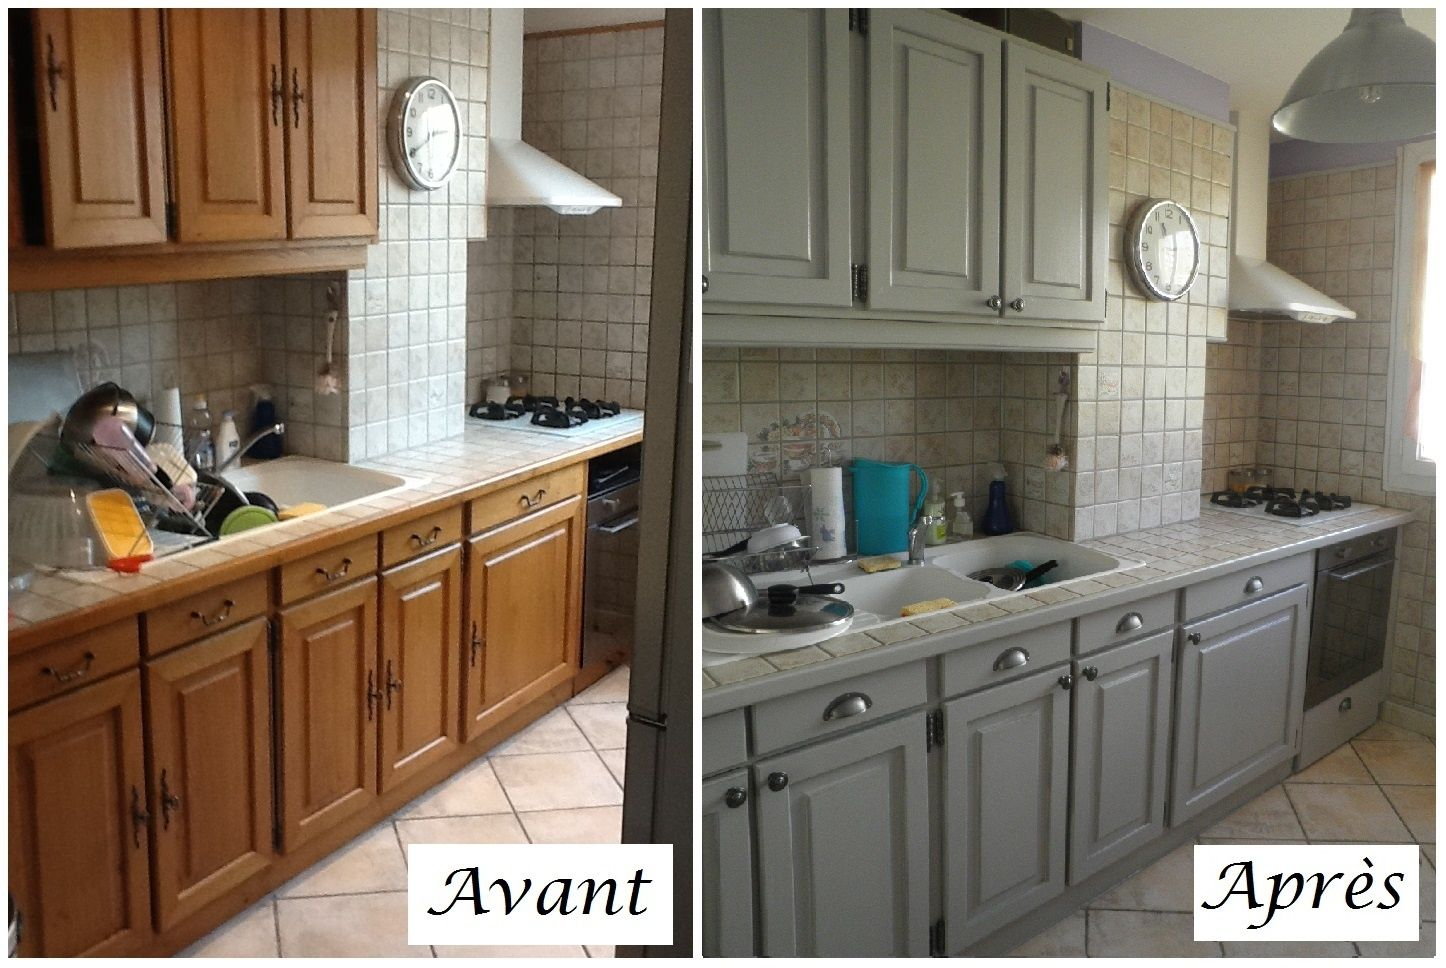 La cuisine relookée | кухня | Pinterest | Home staging, Kitchen and ...